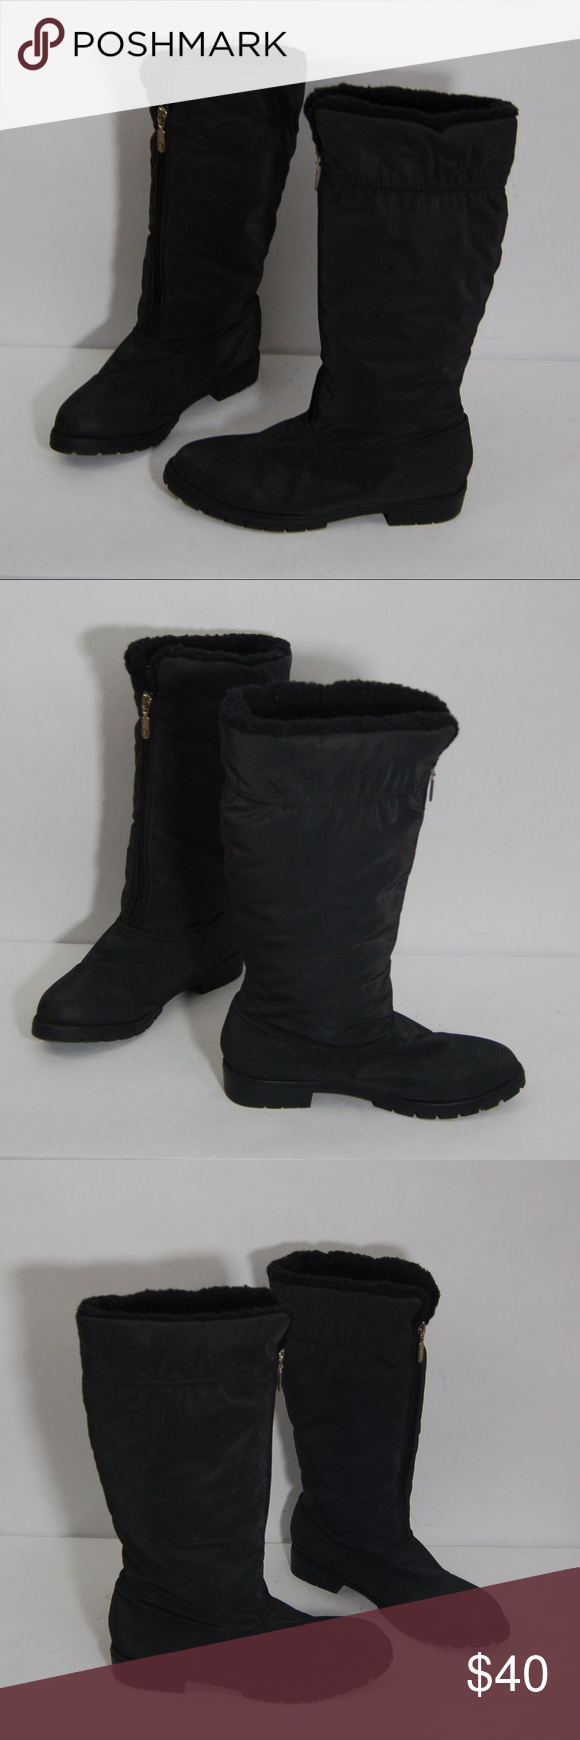 Black Winter Etienne Fleece Lined Boots Aigner hQdsrCxt